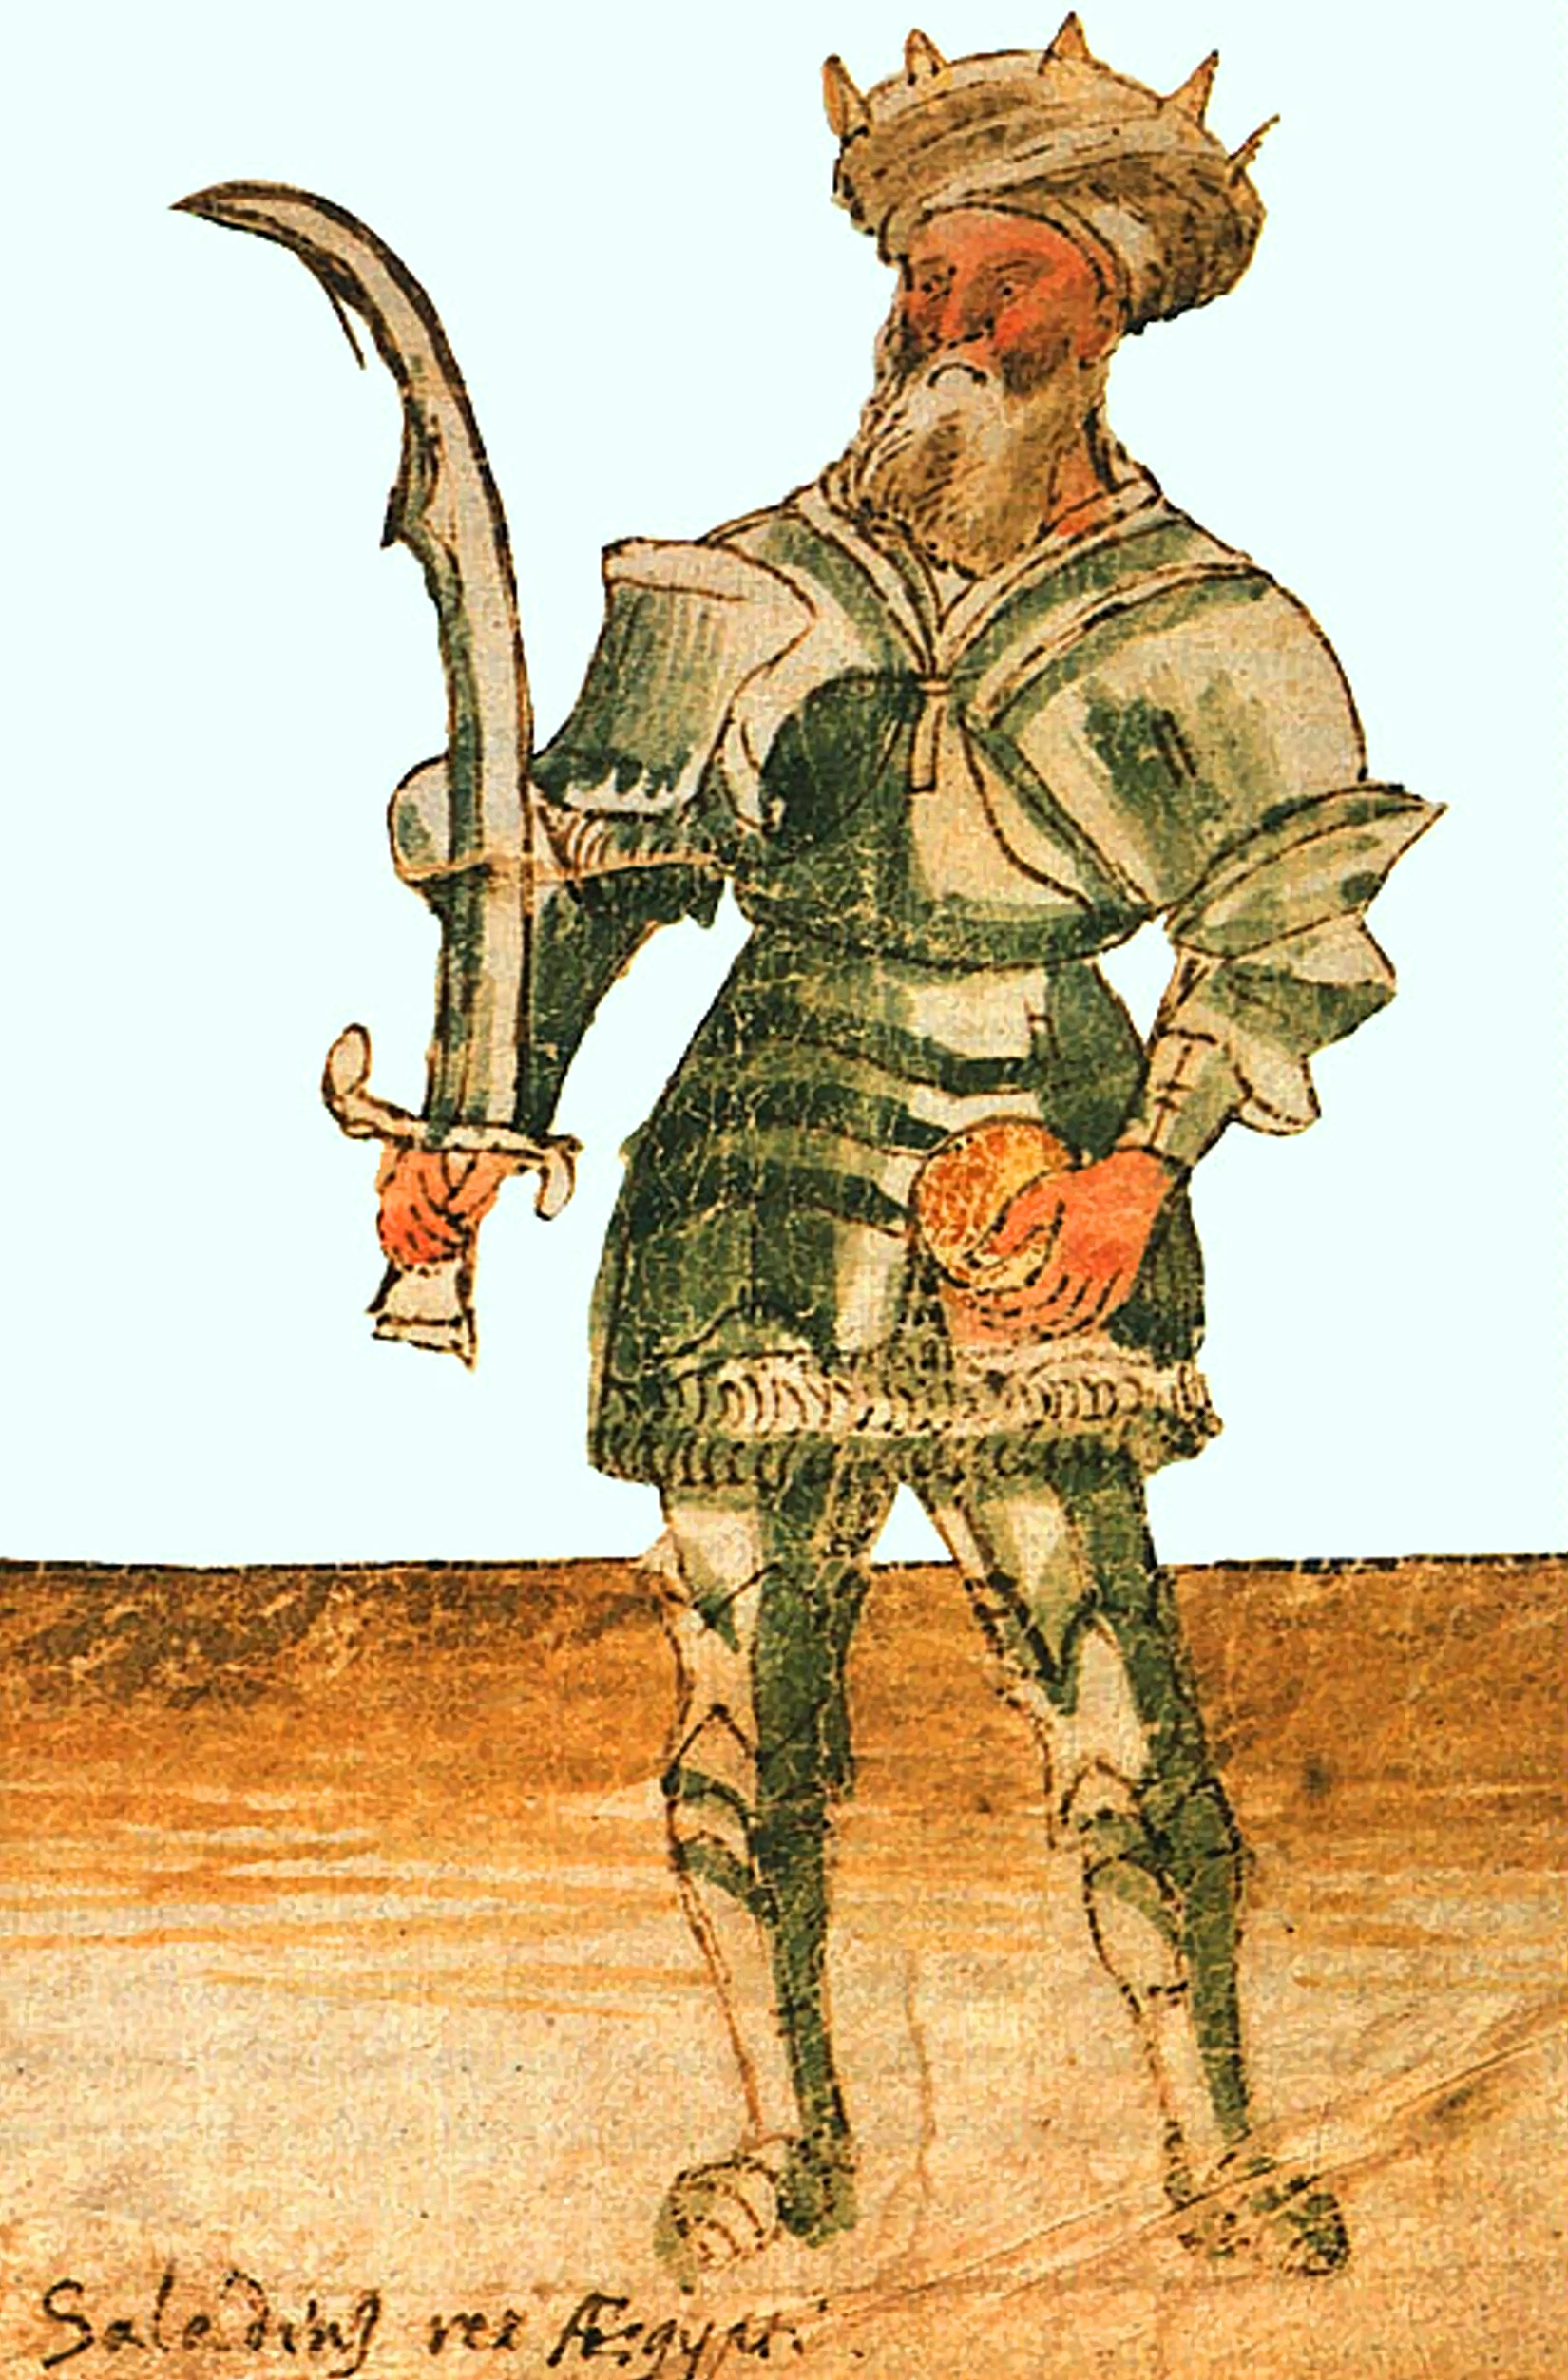 'Saladin Rex Aegypti' (Saladin King of Egypt), painting in 15th century manuscript, holding bread as a symbol of peace offering, balanced by the sword